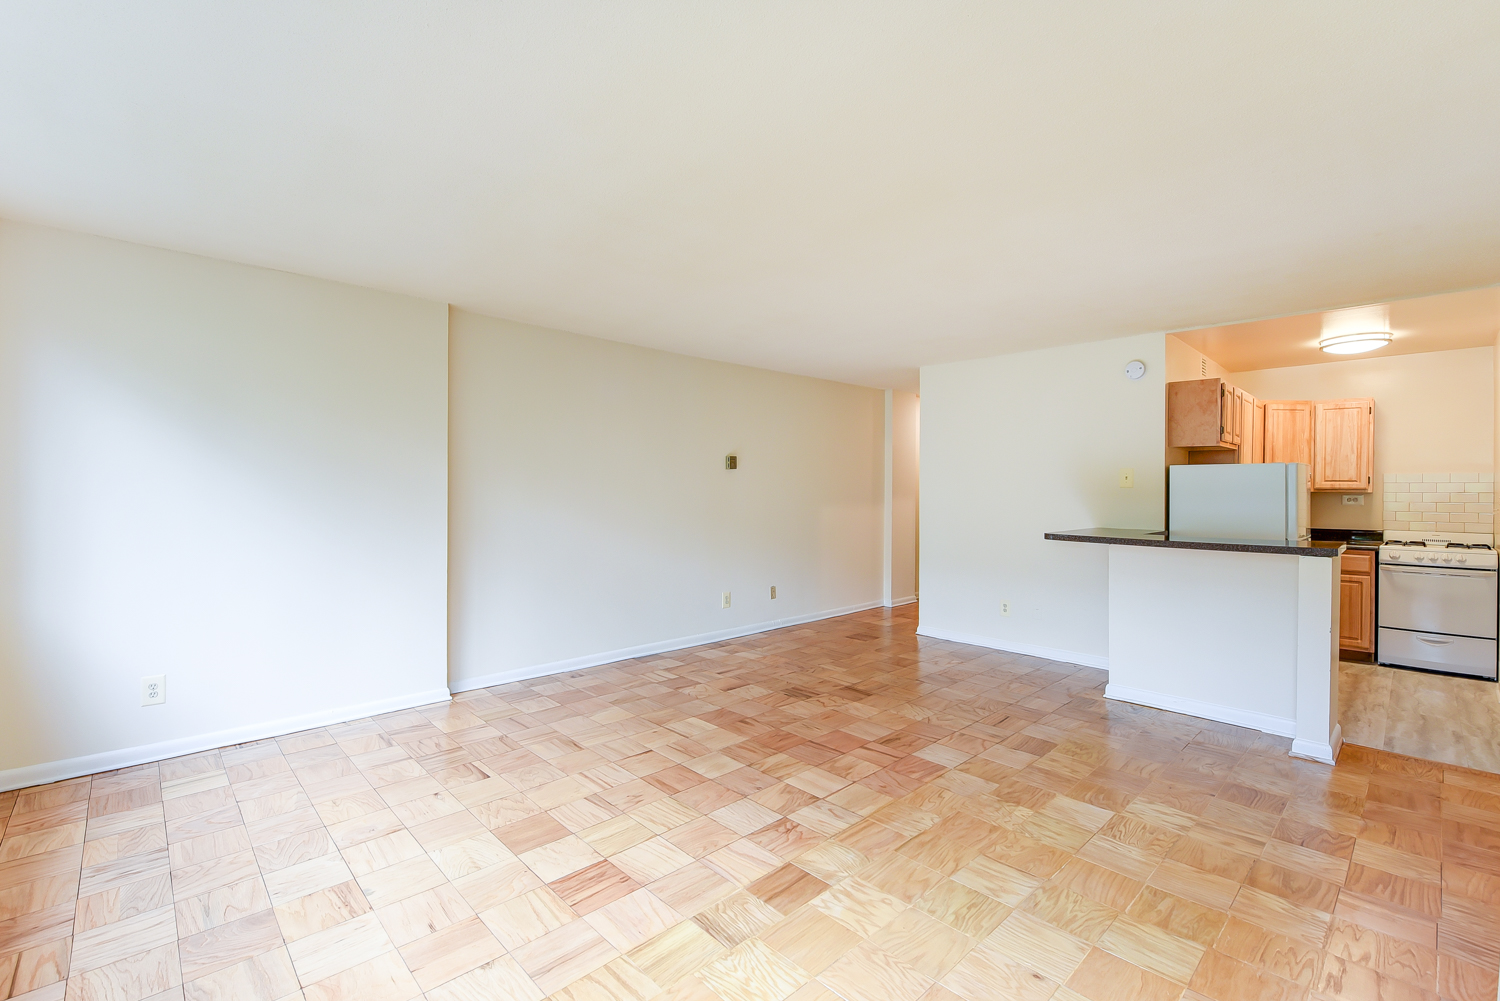 apartments-under-1800-Twin-Oaks-Apartments-Columbia-Heights-NW-DC-Apartments-Kitchen-Bar-View